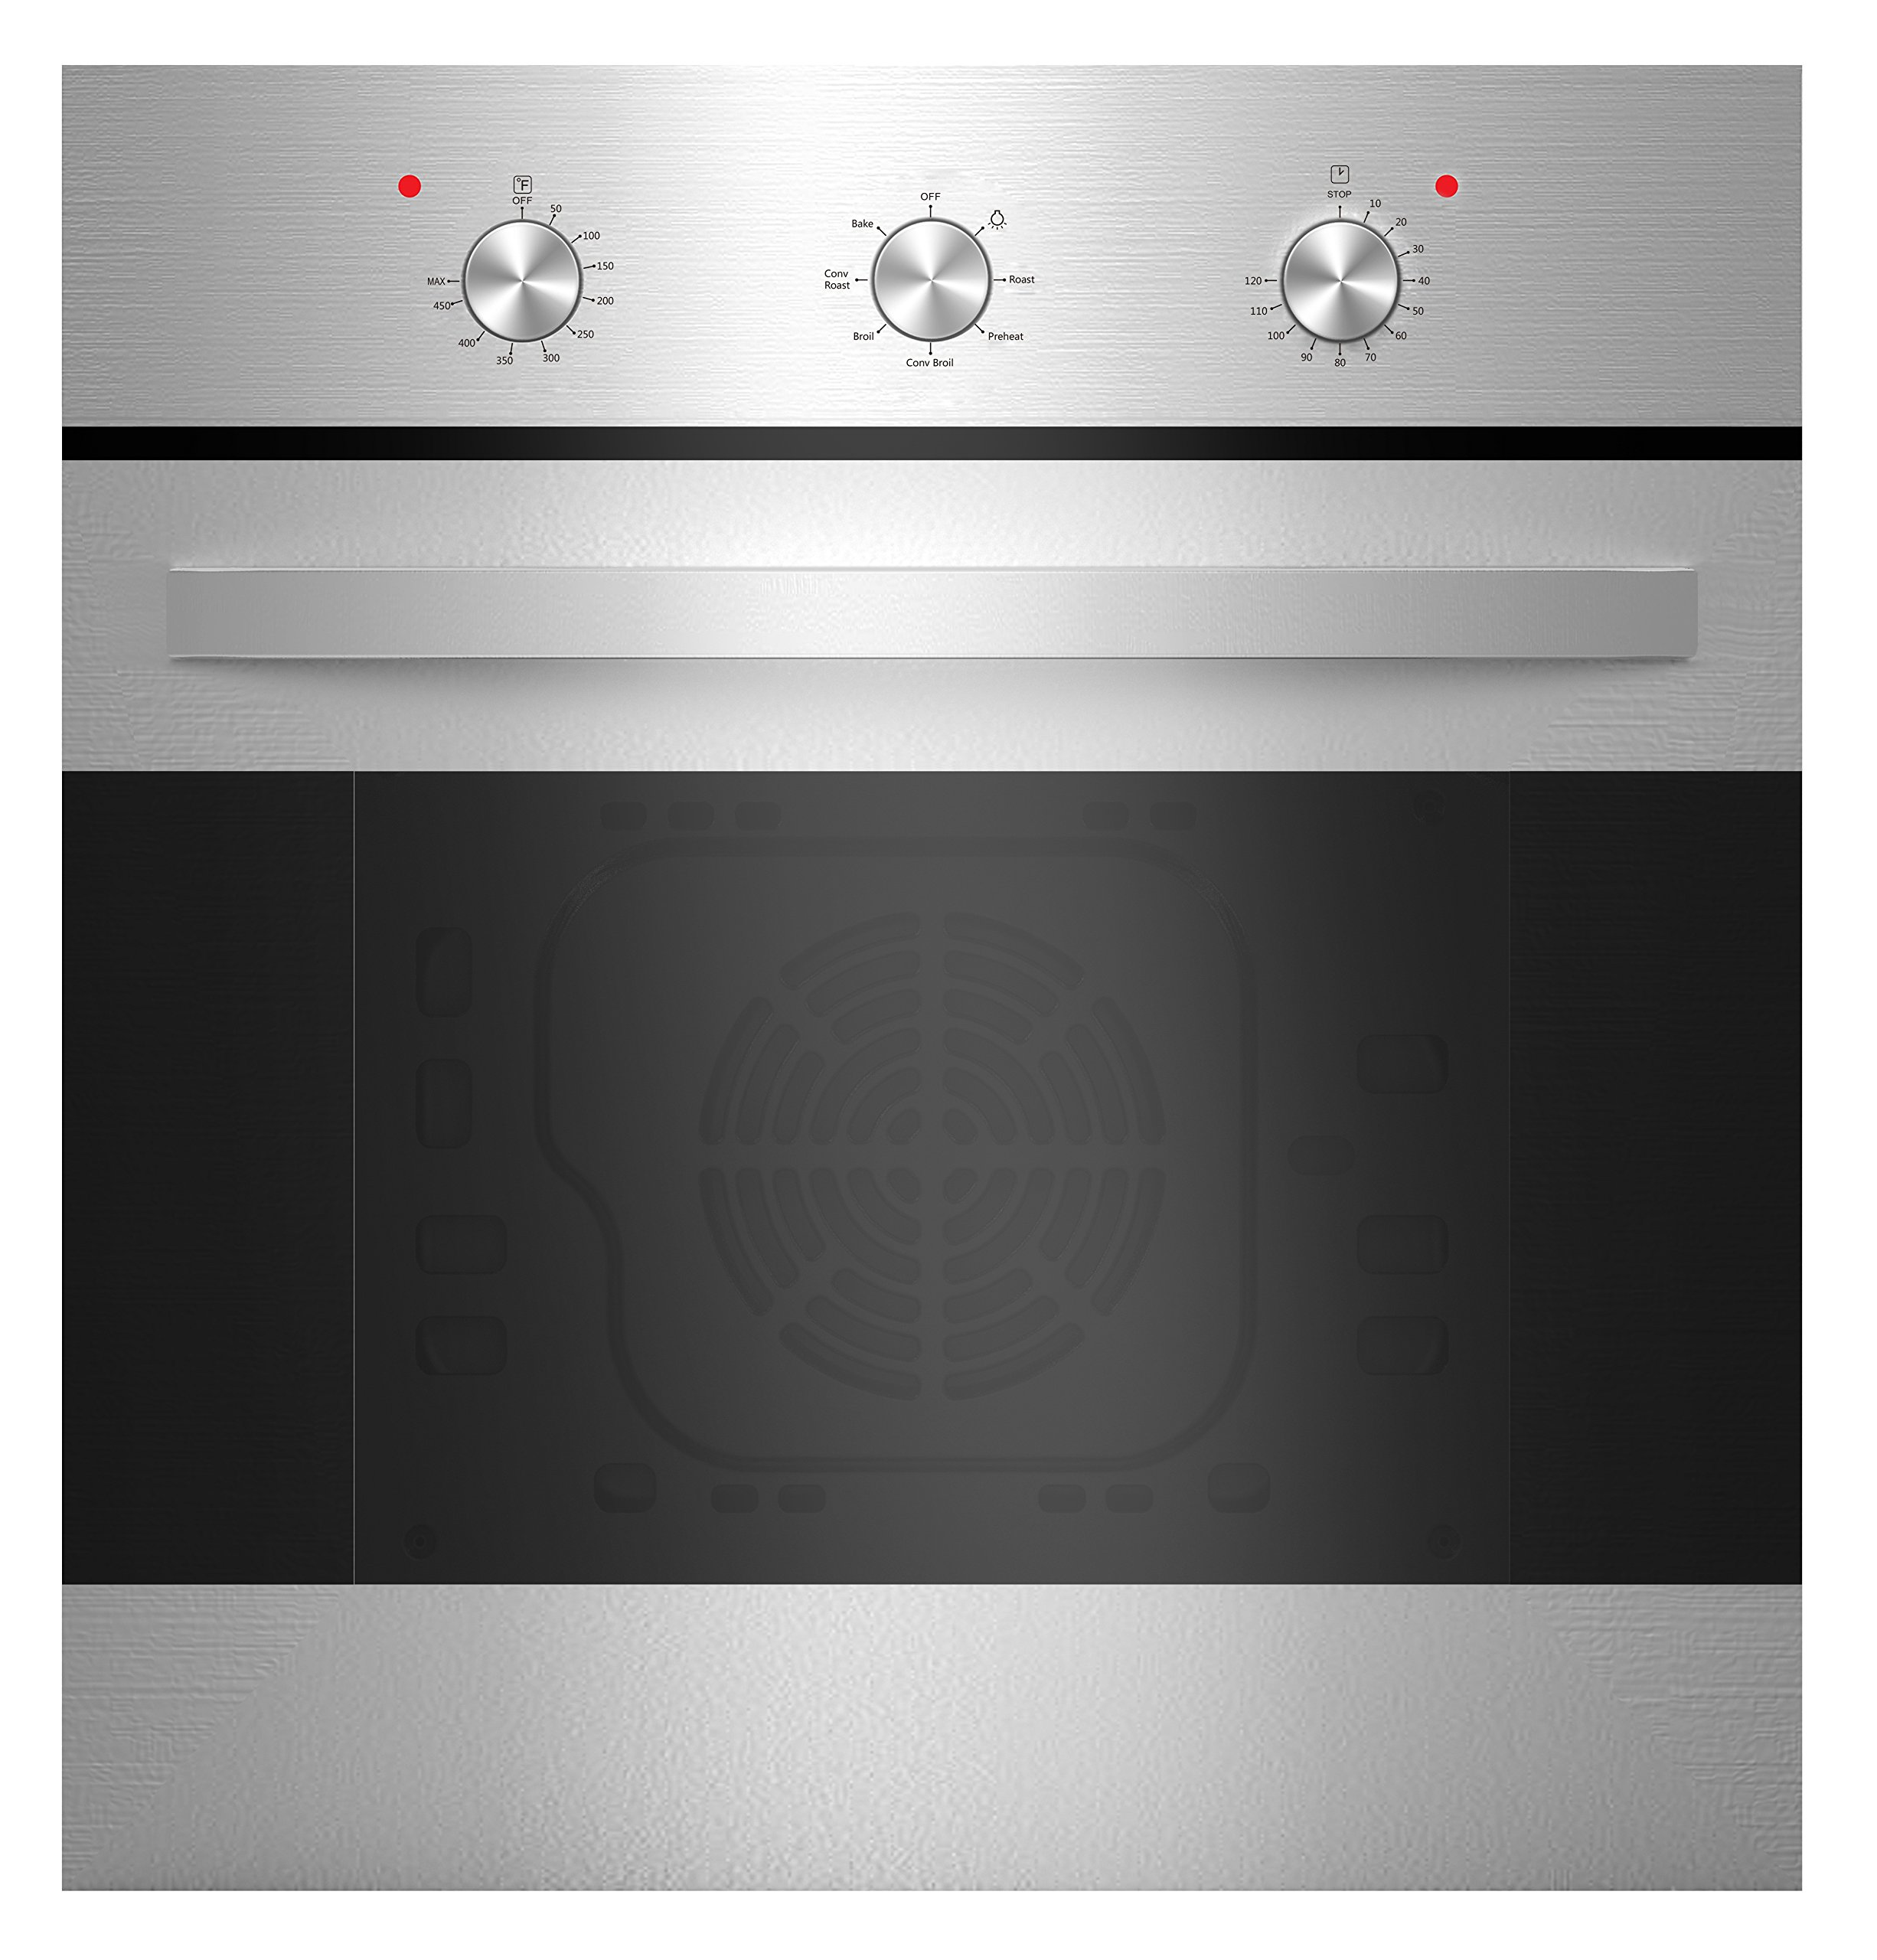 Empava 24'' Stainless Steel 6 Cooking Function Electric Built-in Single Wall Oven  EMPV-24WOB14 by Empava